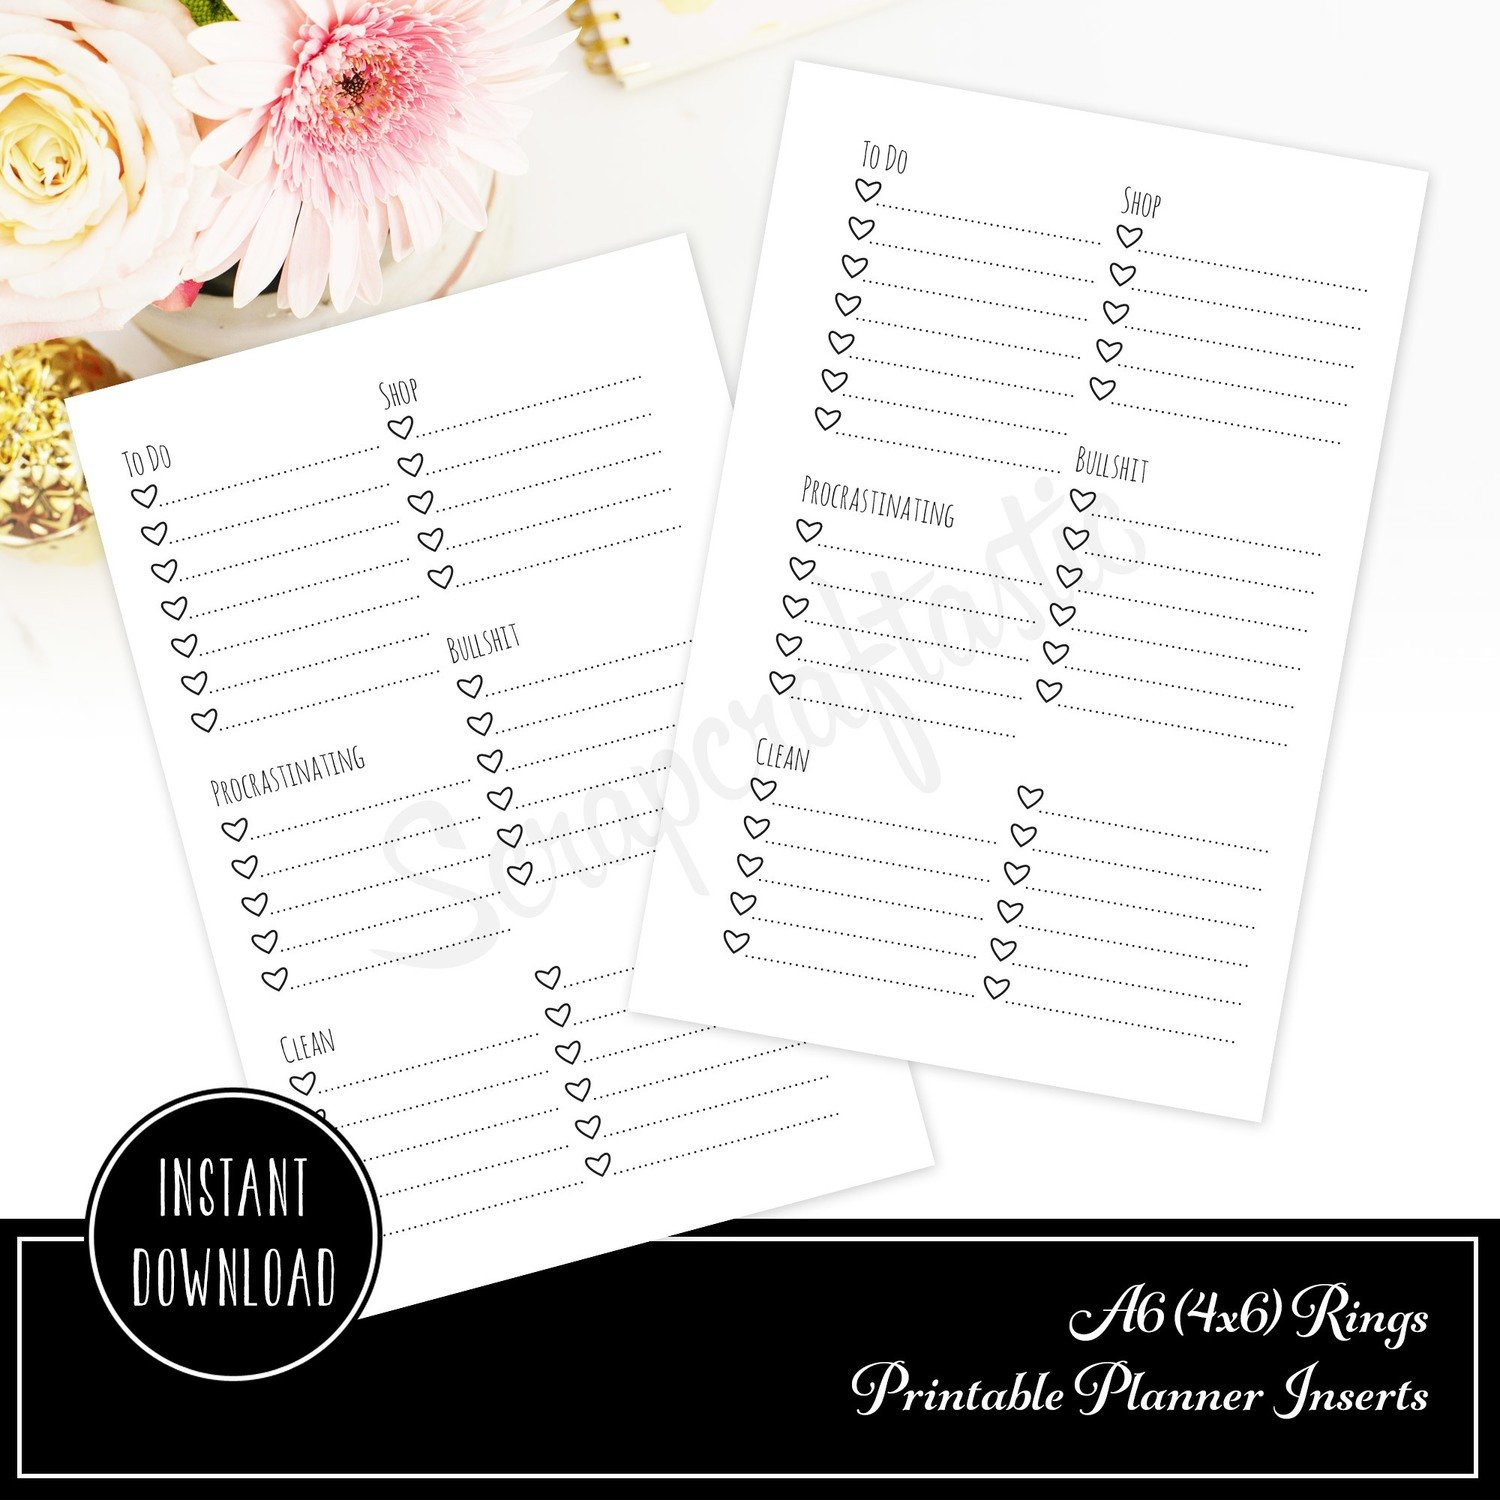 Extreme Listing A6 Rings Printable Planner Inserts